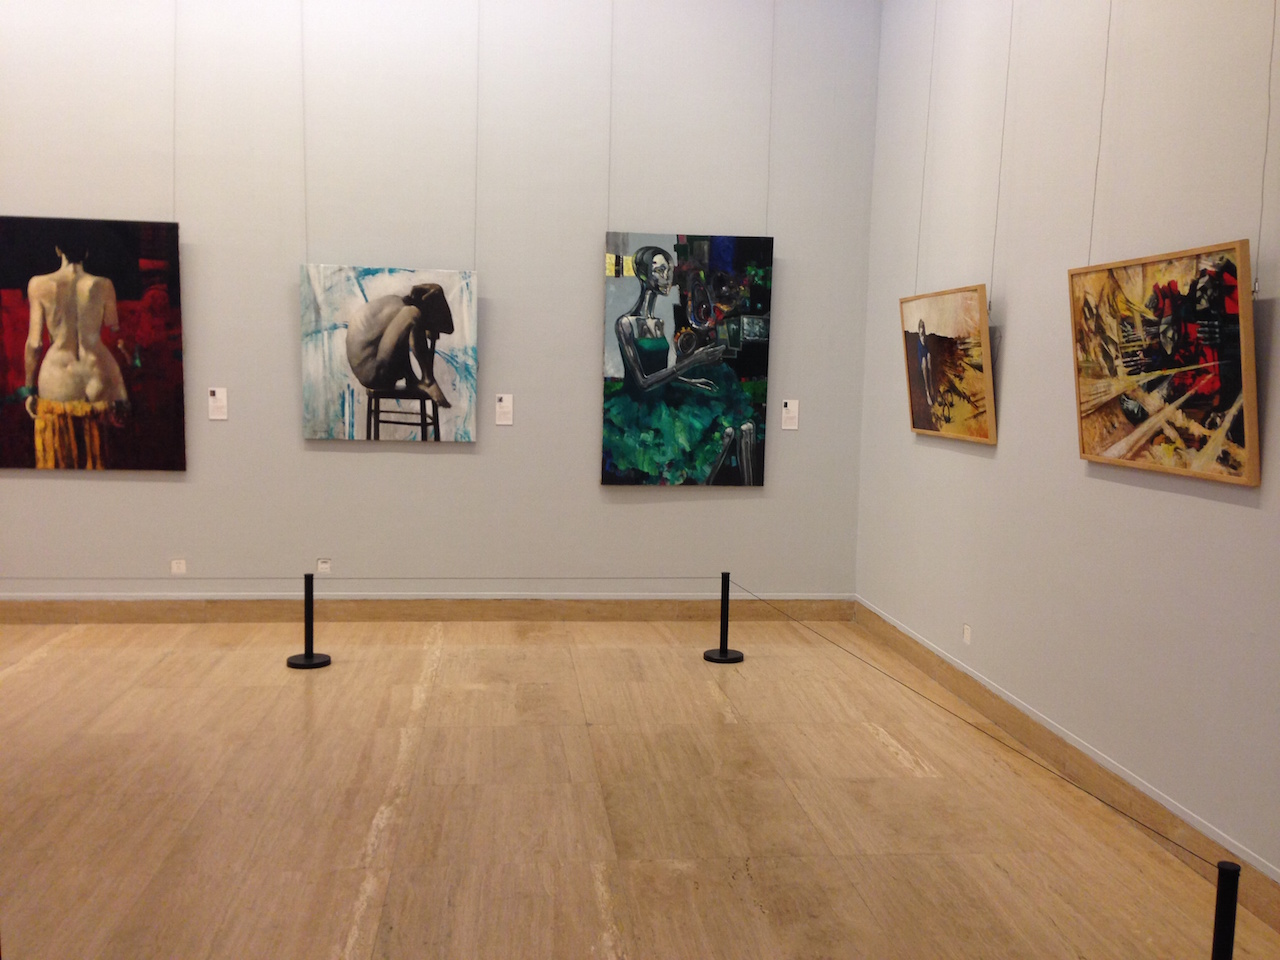 """Installation view of """"Dreamscapes"""" showing paintings by Ararat Minasyan (photo by Anna Gargarian)"""